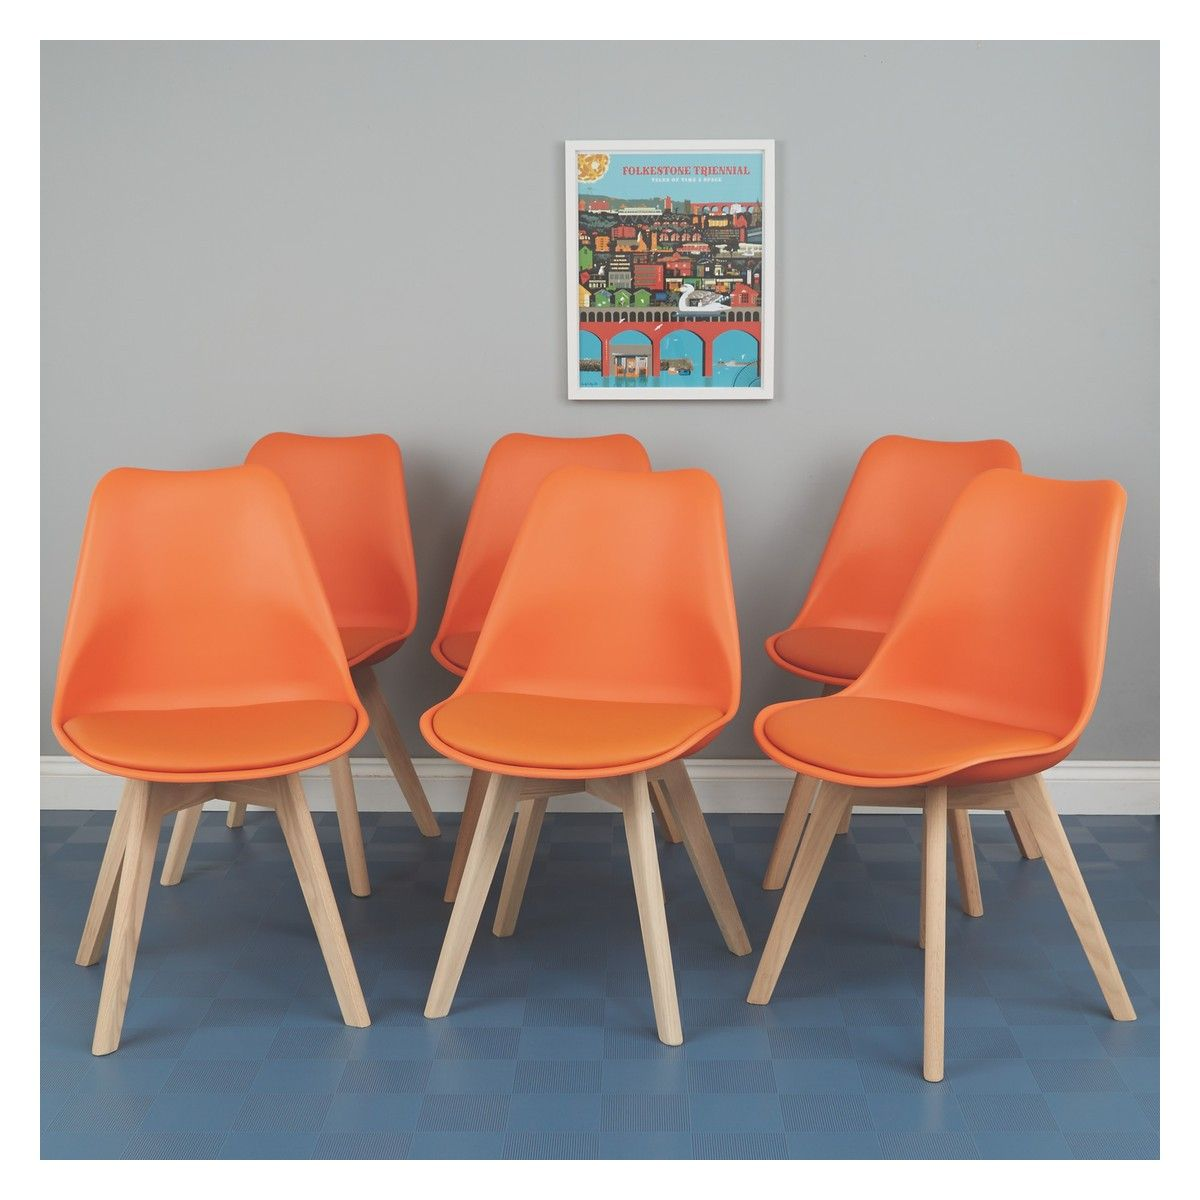 JERRY Set of 6 orange dining chairs Chairs Pinterest Set of